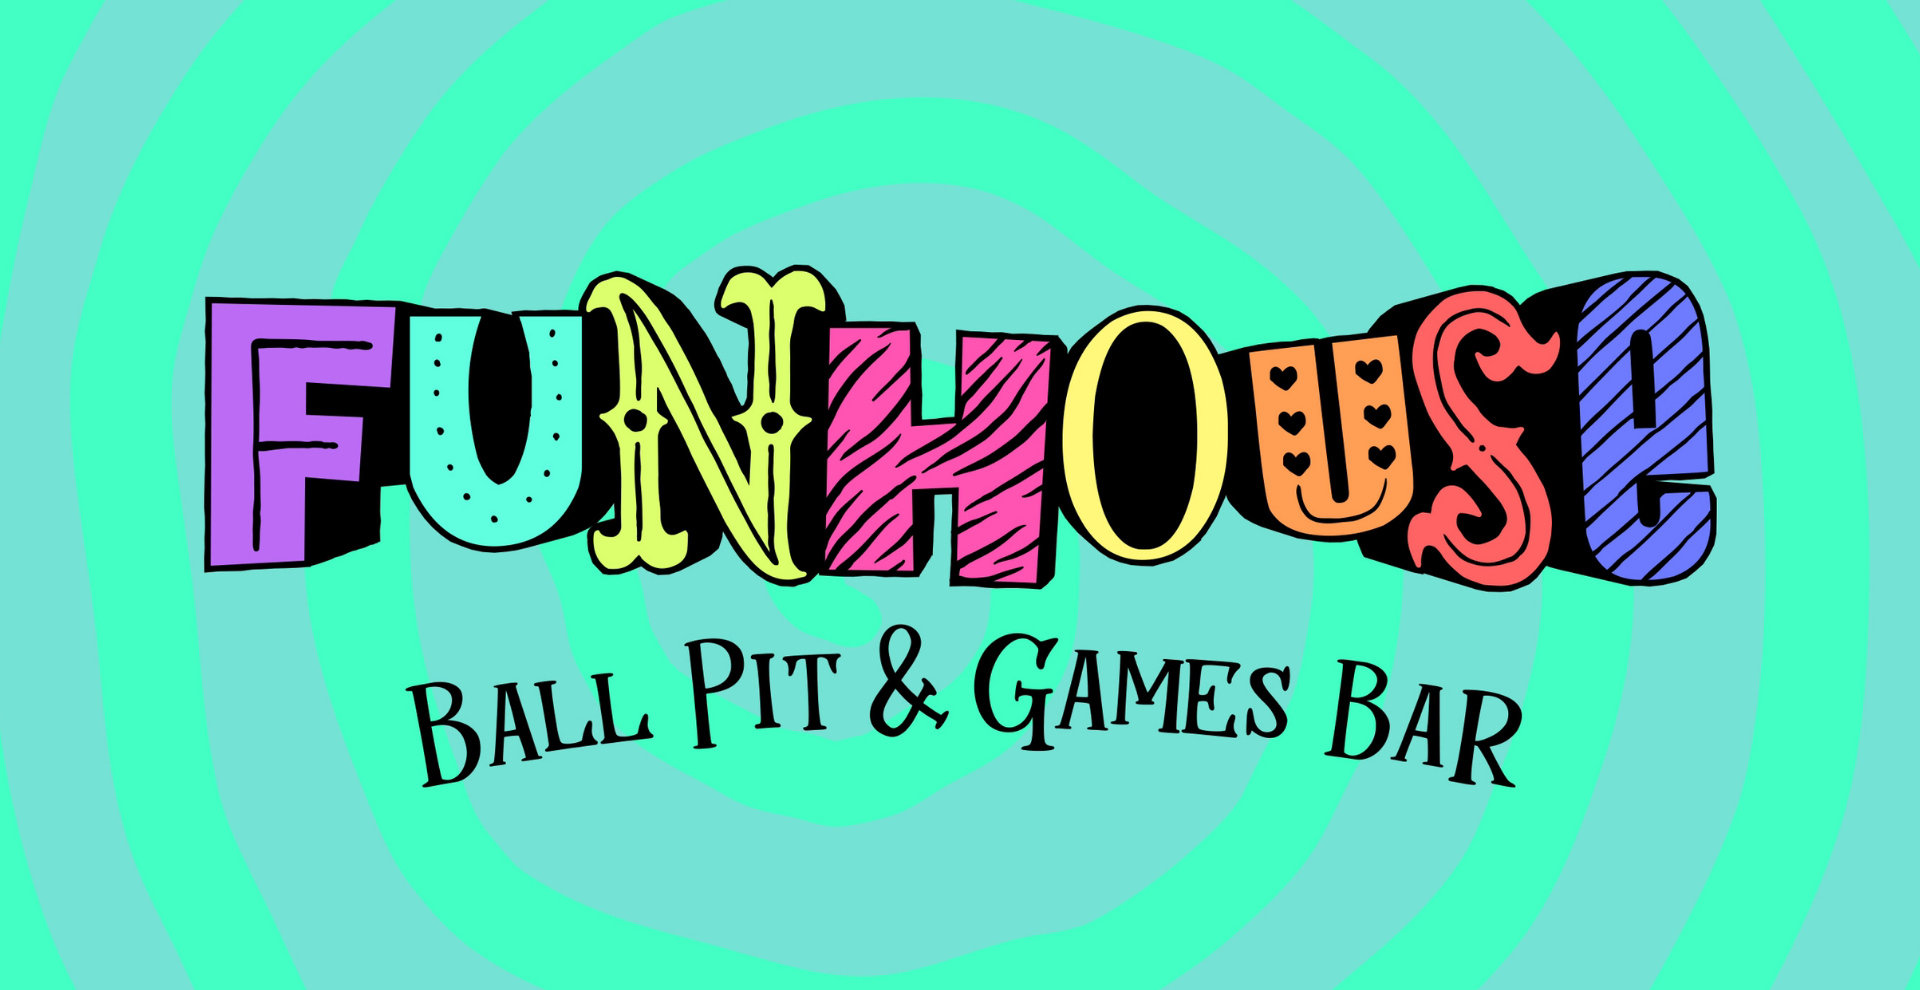 FunkyFriday - Ball Pit Ticket